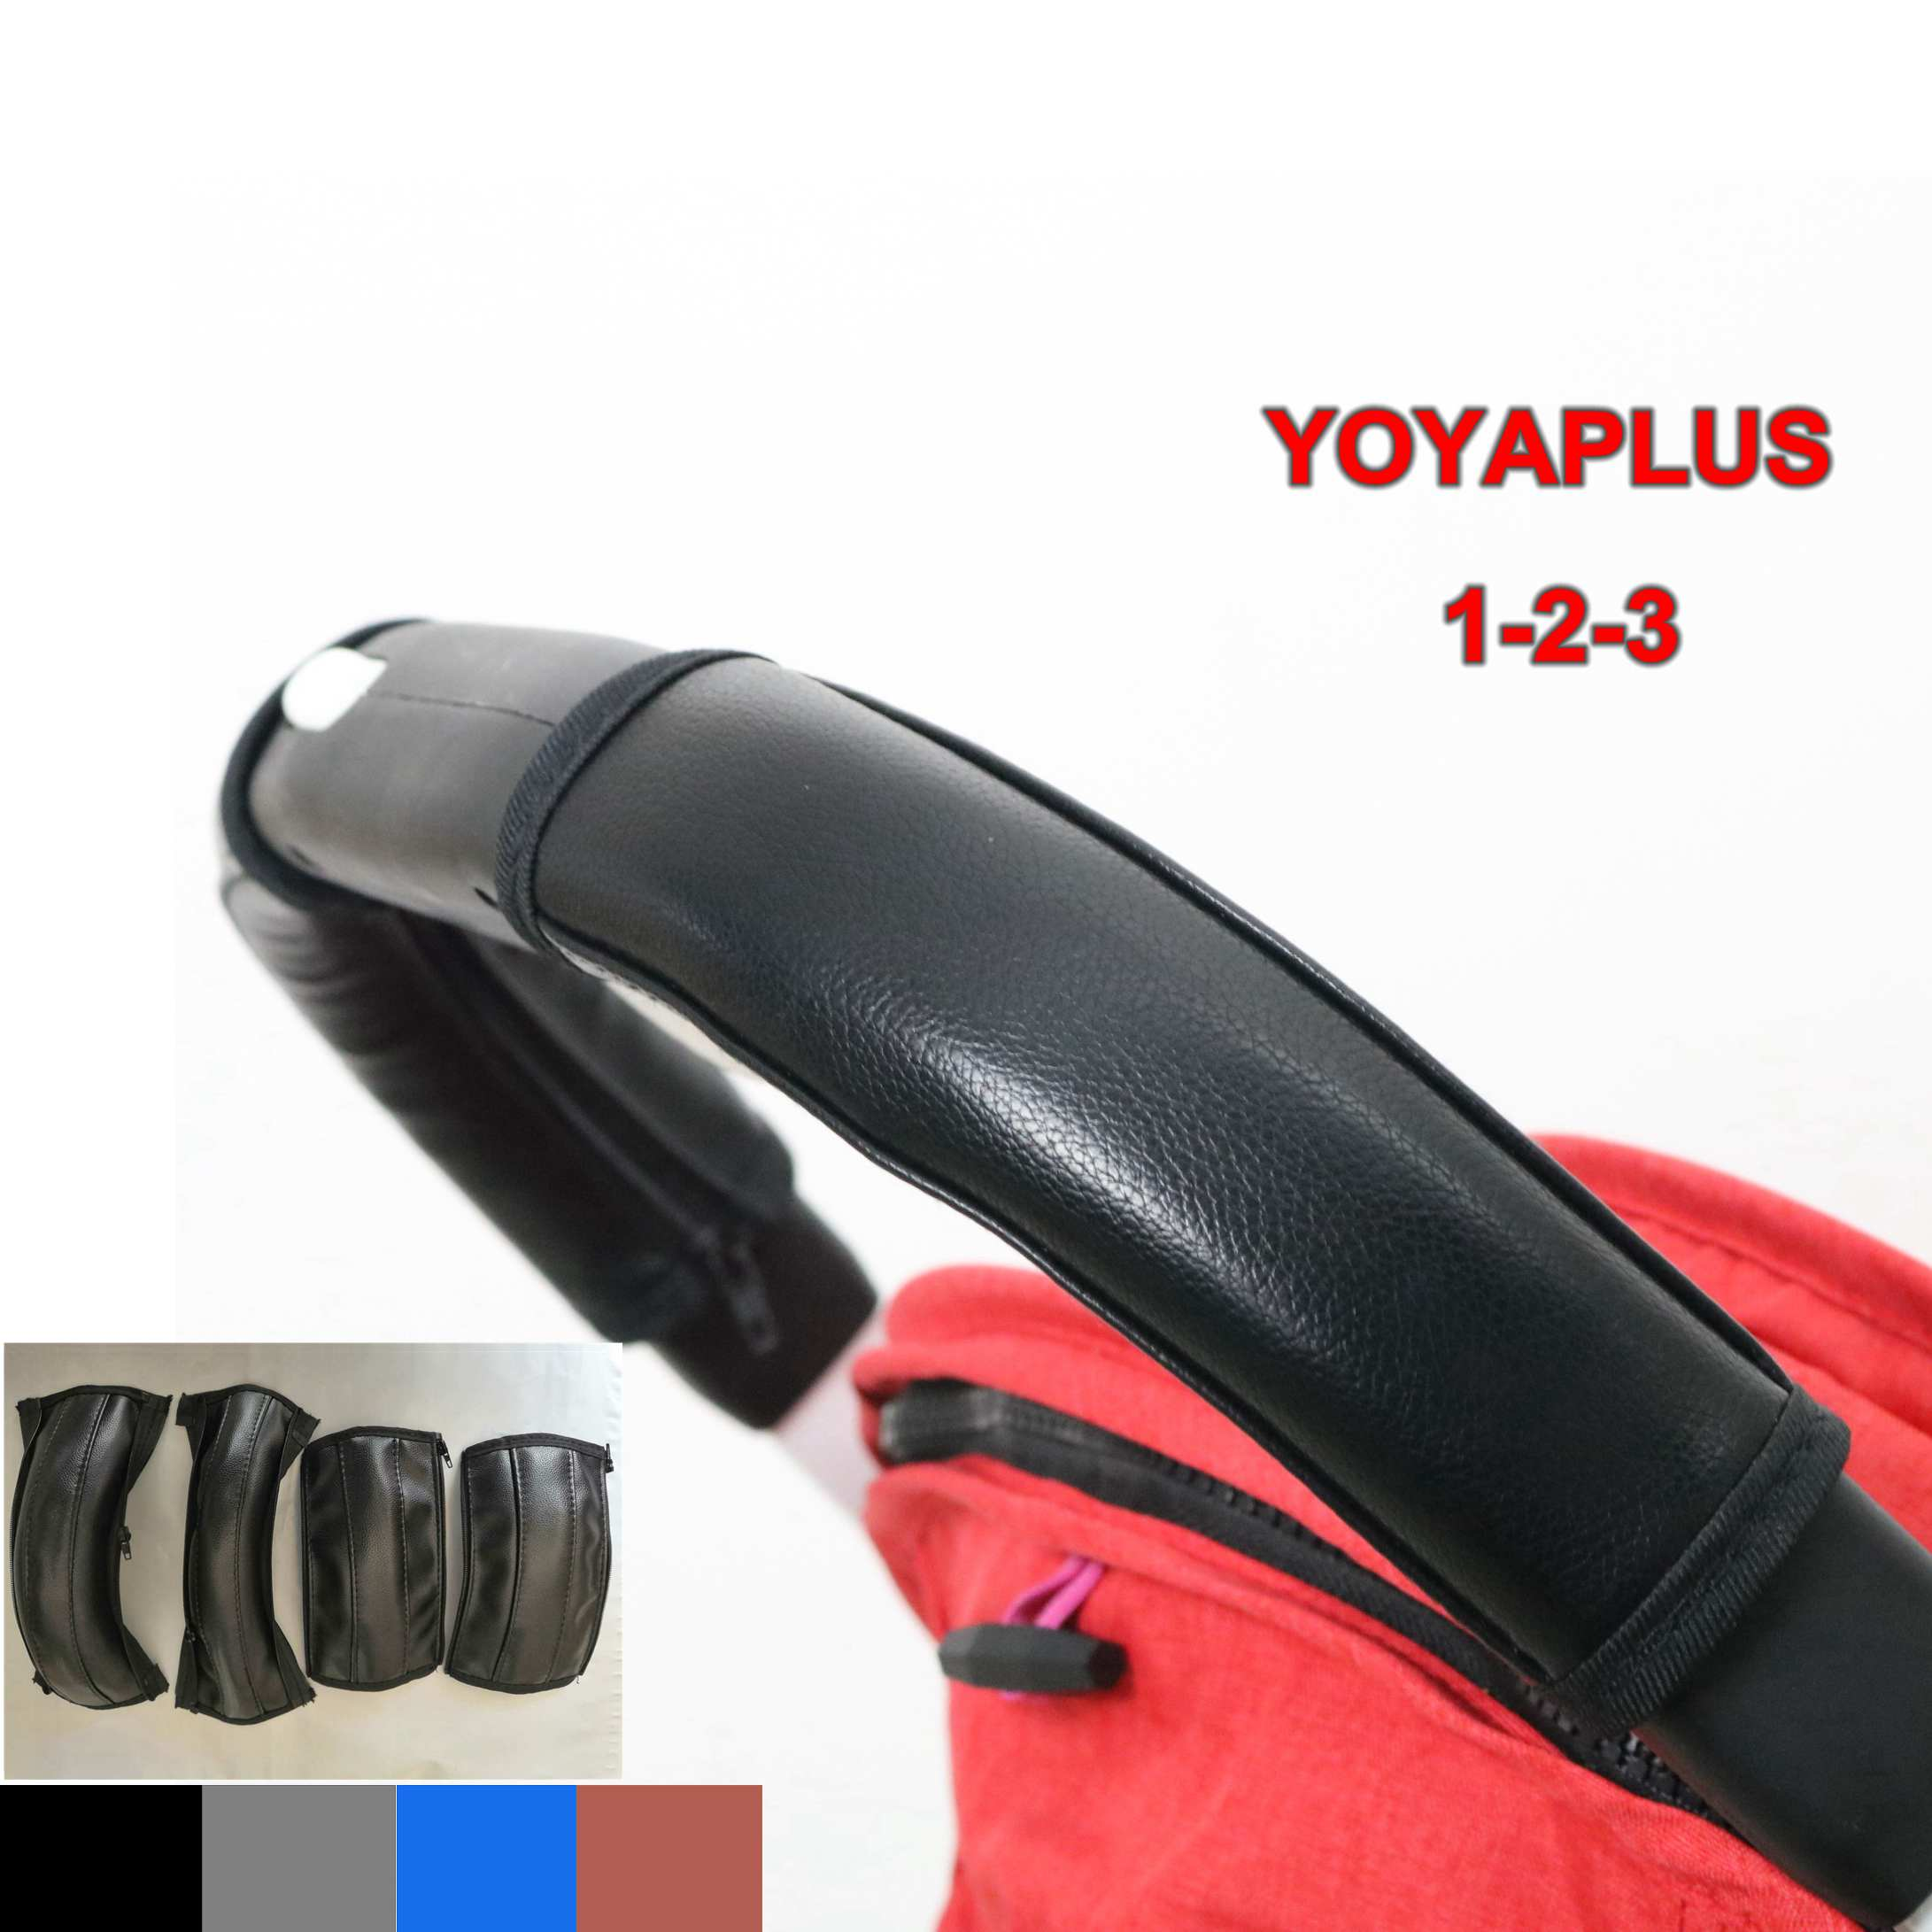 Pram Stroller Accessories Leather Covers Handle Wheelchairs Baby Stroller Armrest Pu Protective Case for 2pc/set Yoyaplus 1 2 3